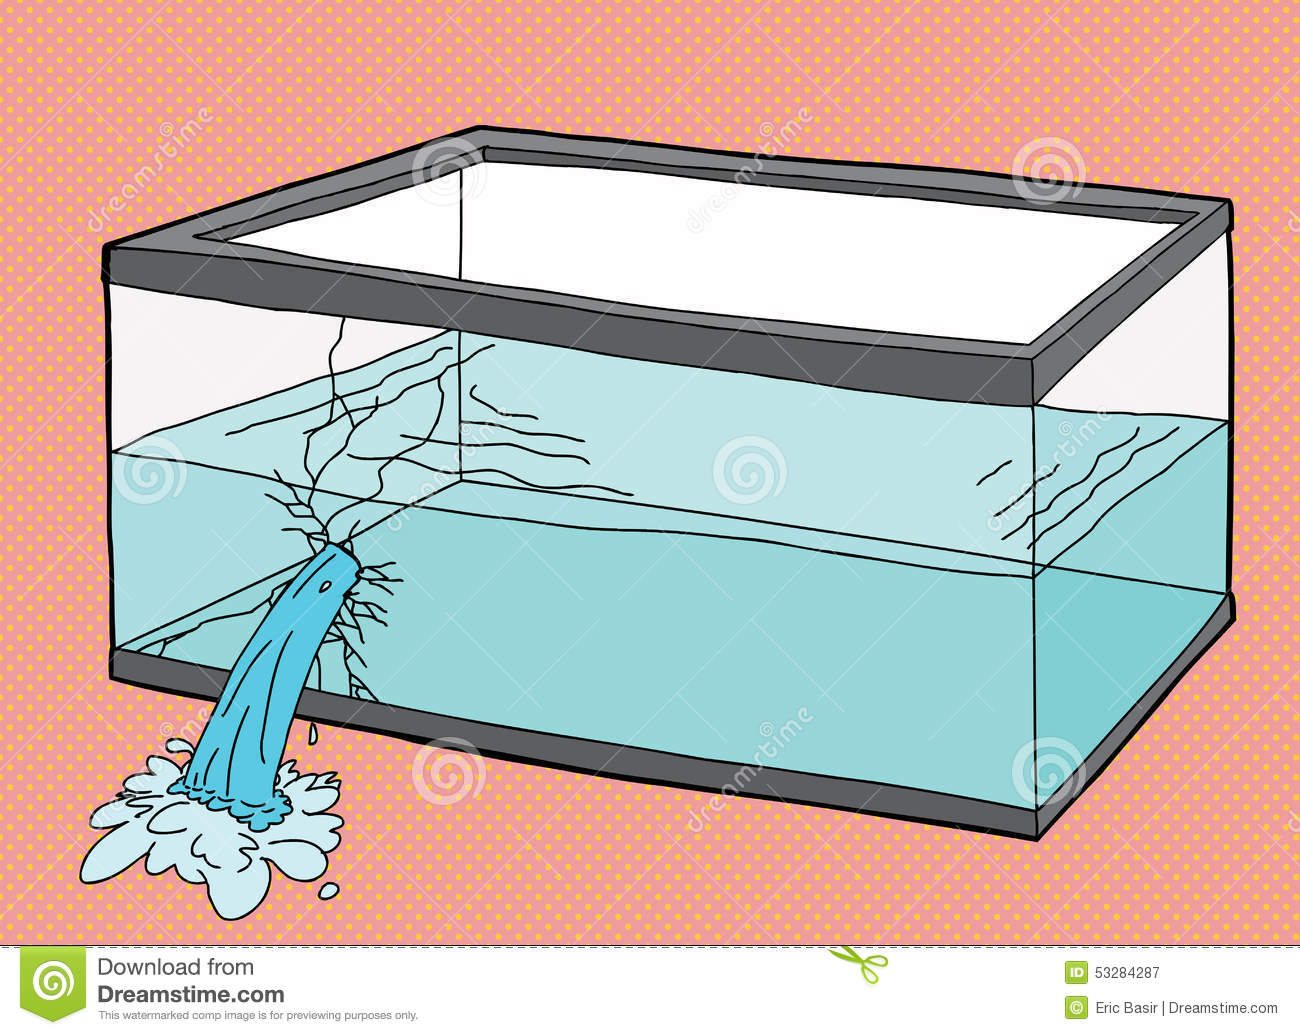 how to fix a cracked fish tank